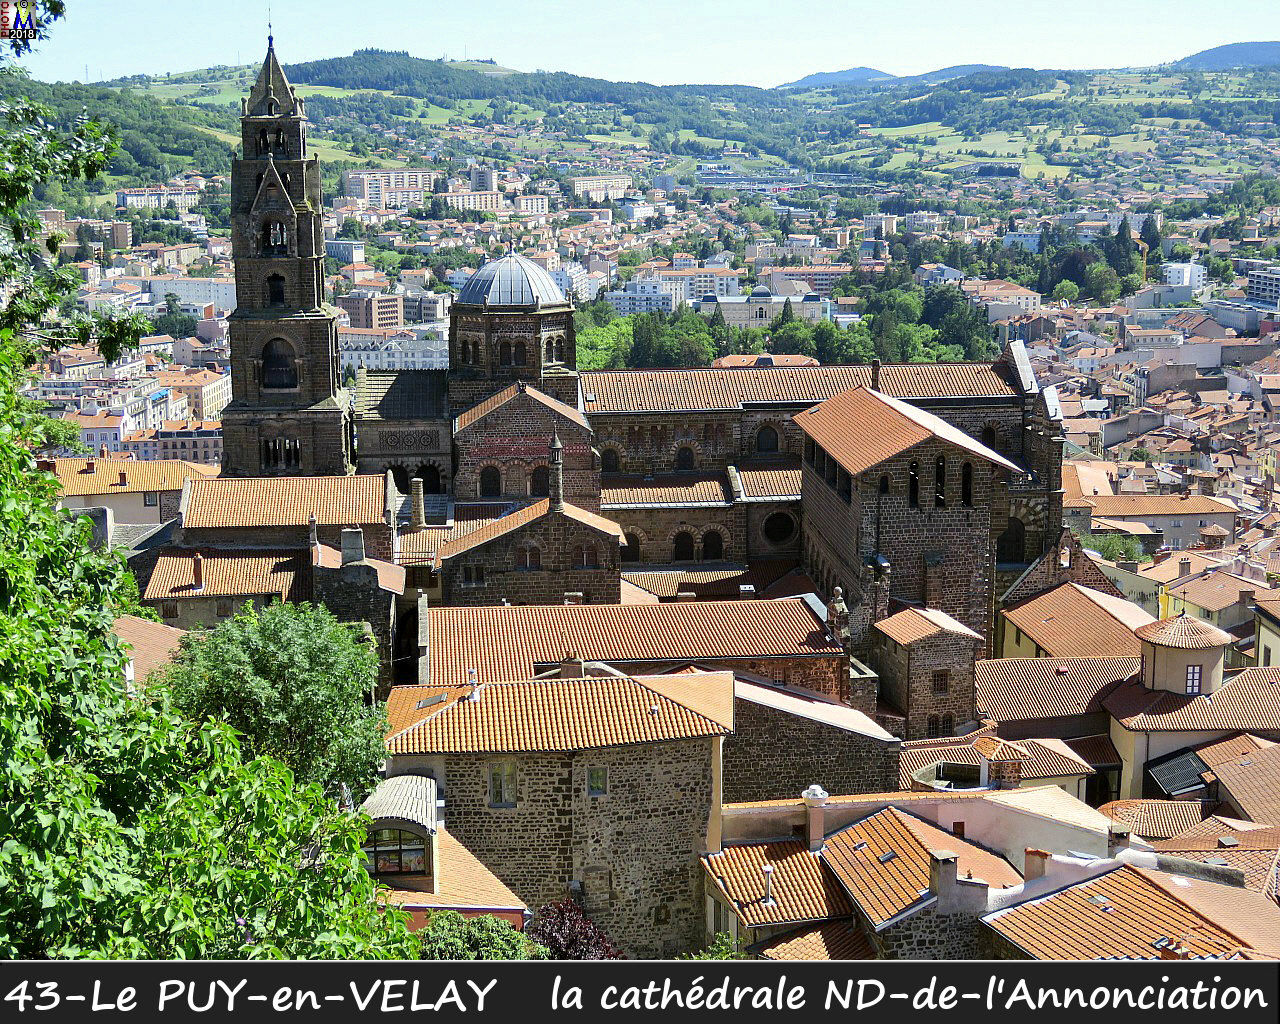 43PUY-EN-VELAY_cathedrale_102.jpg